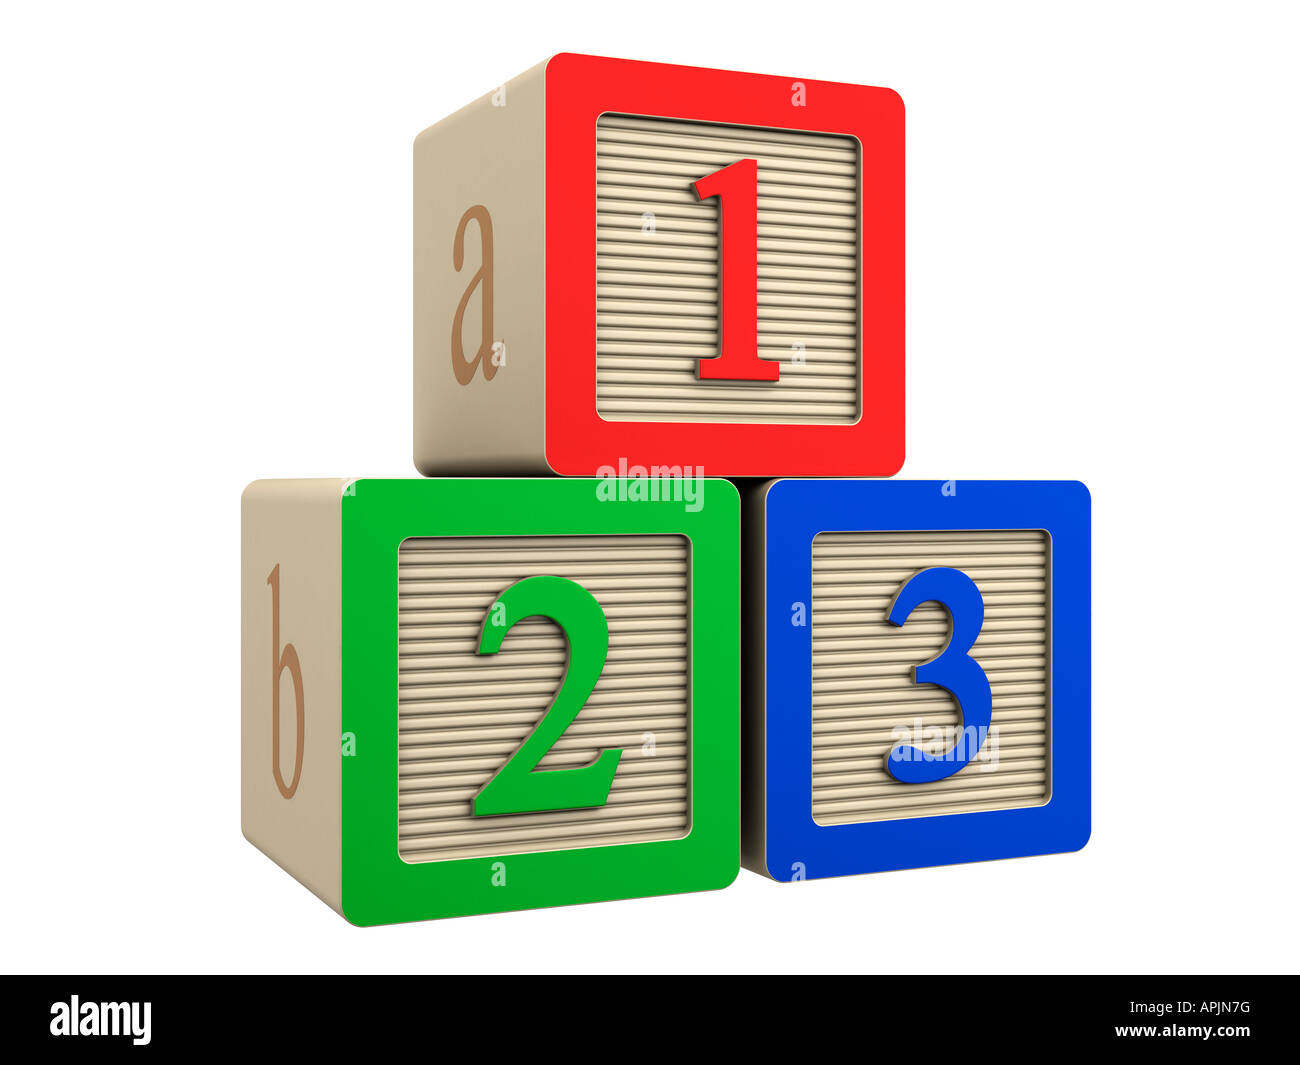 toy wooden block 123 one two three - Stock Image